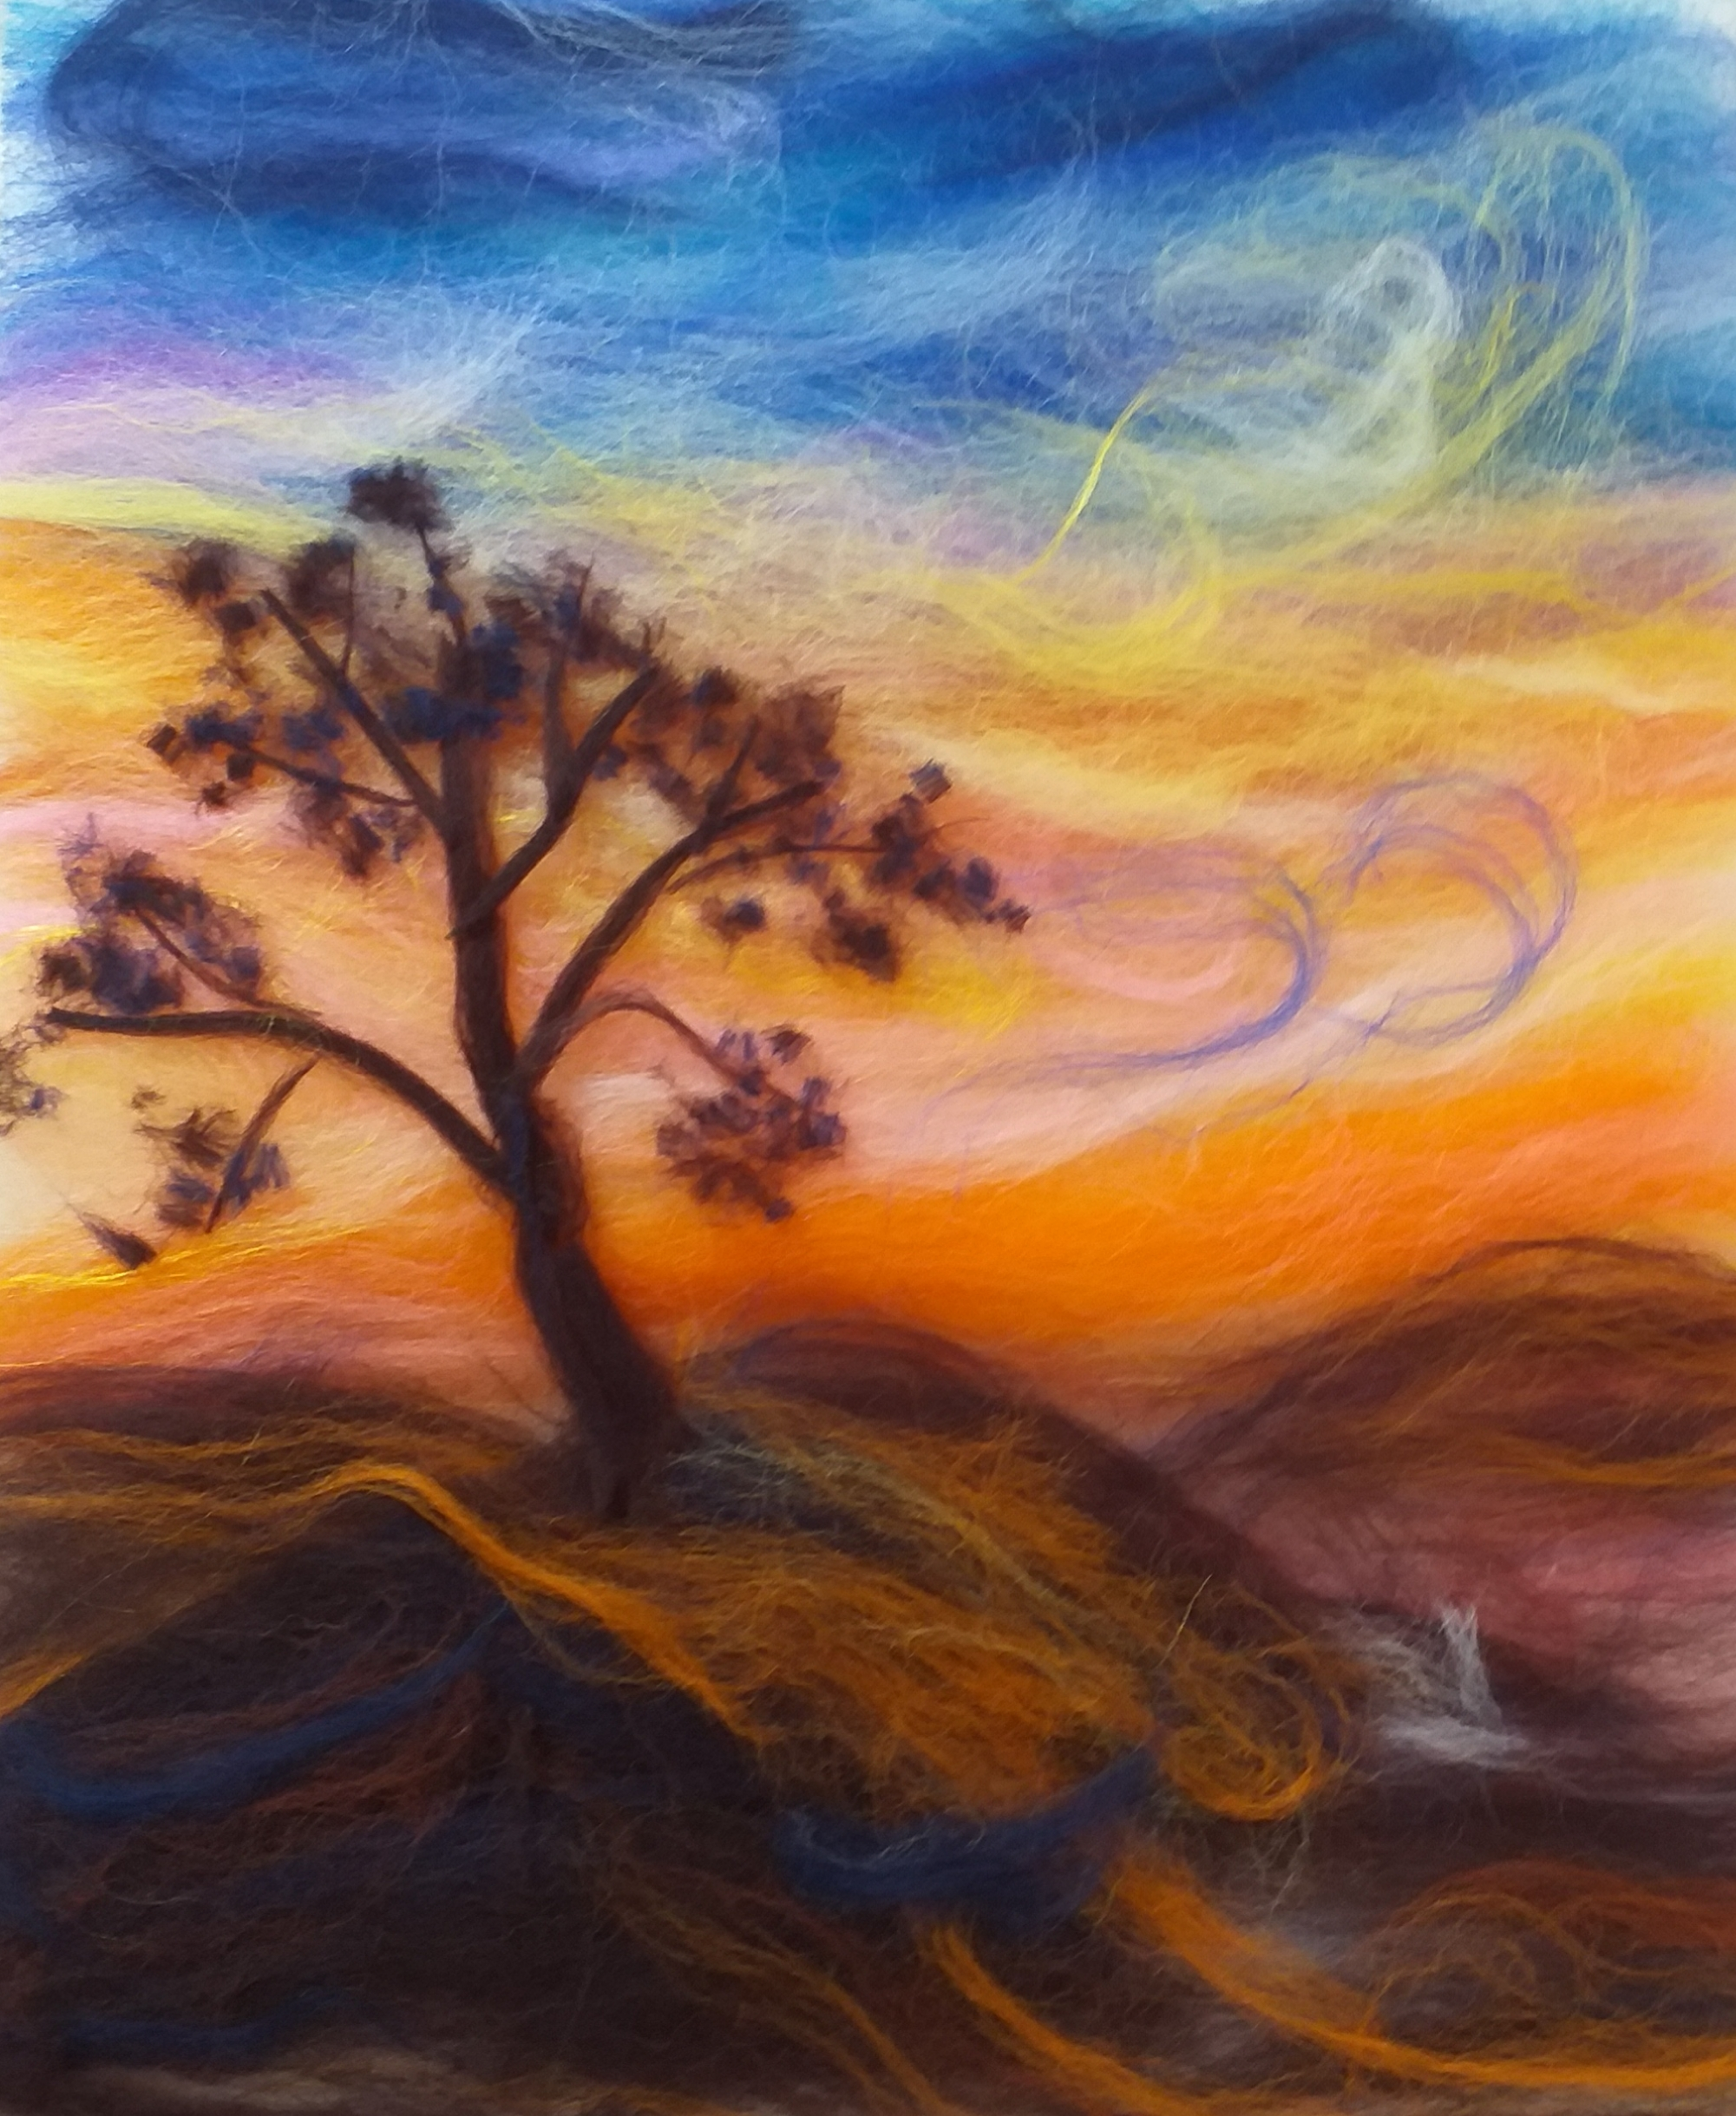 Sunset wool painting made by a complete beginner at Art Classes in Kidderminster